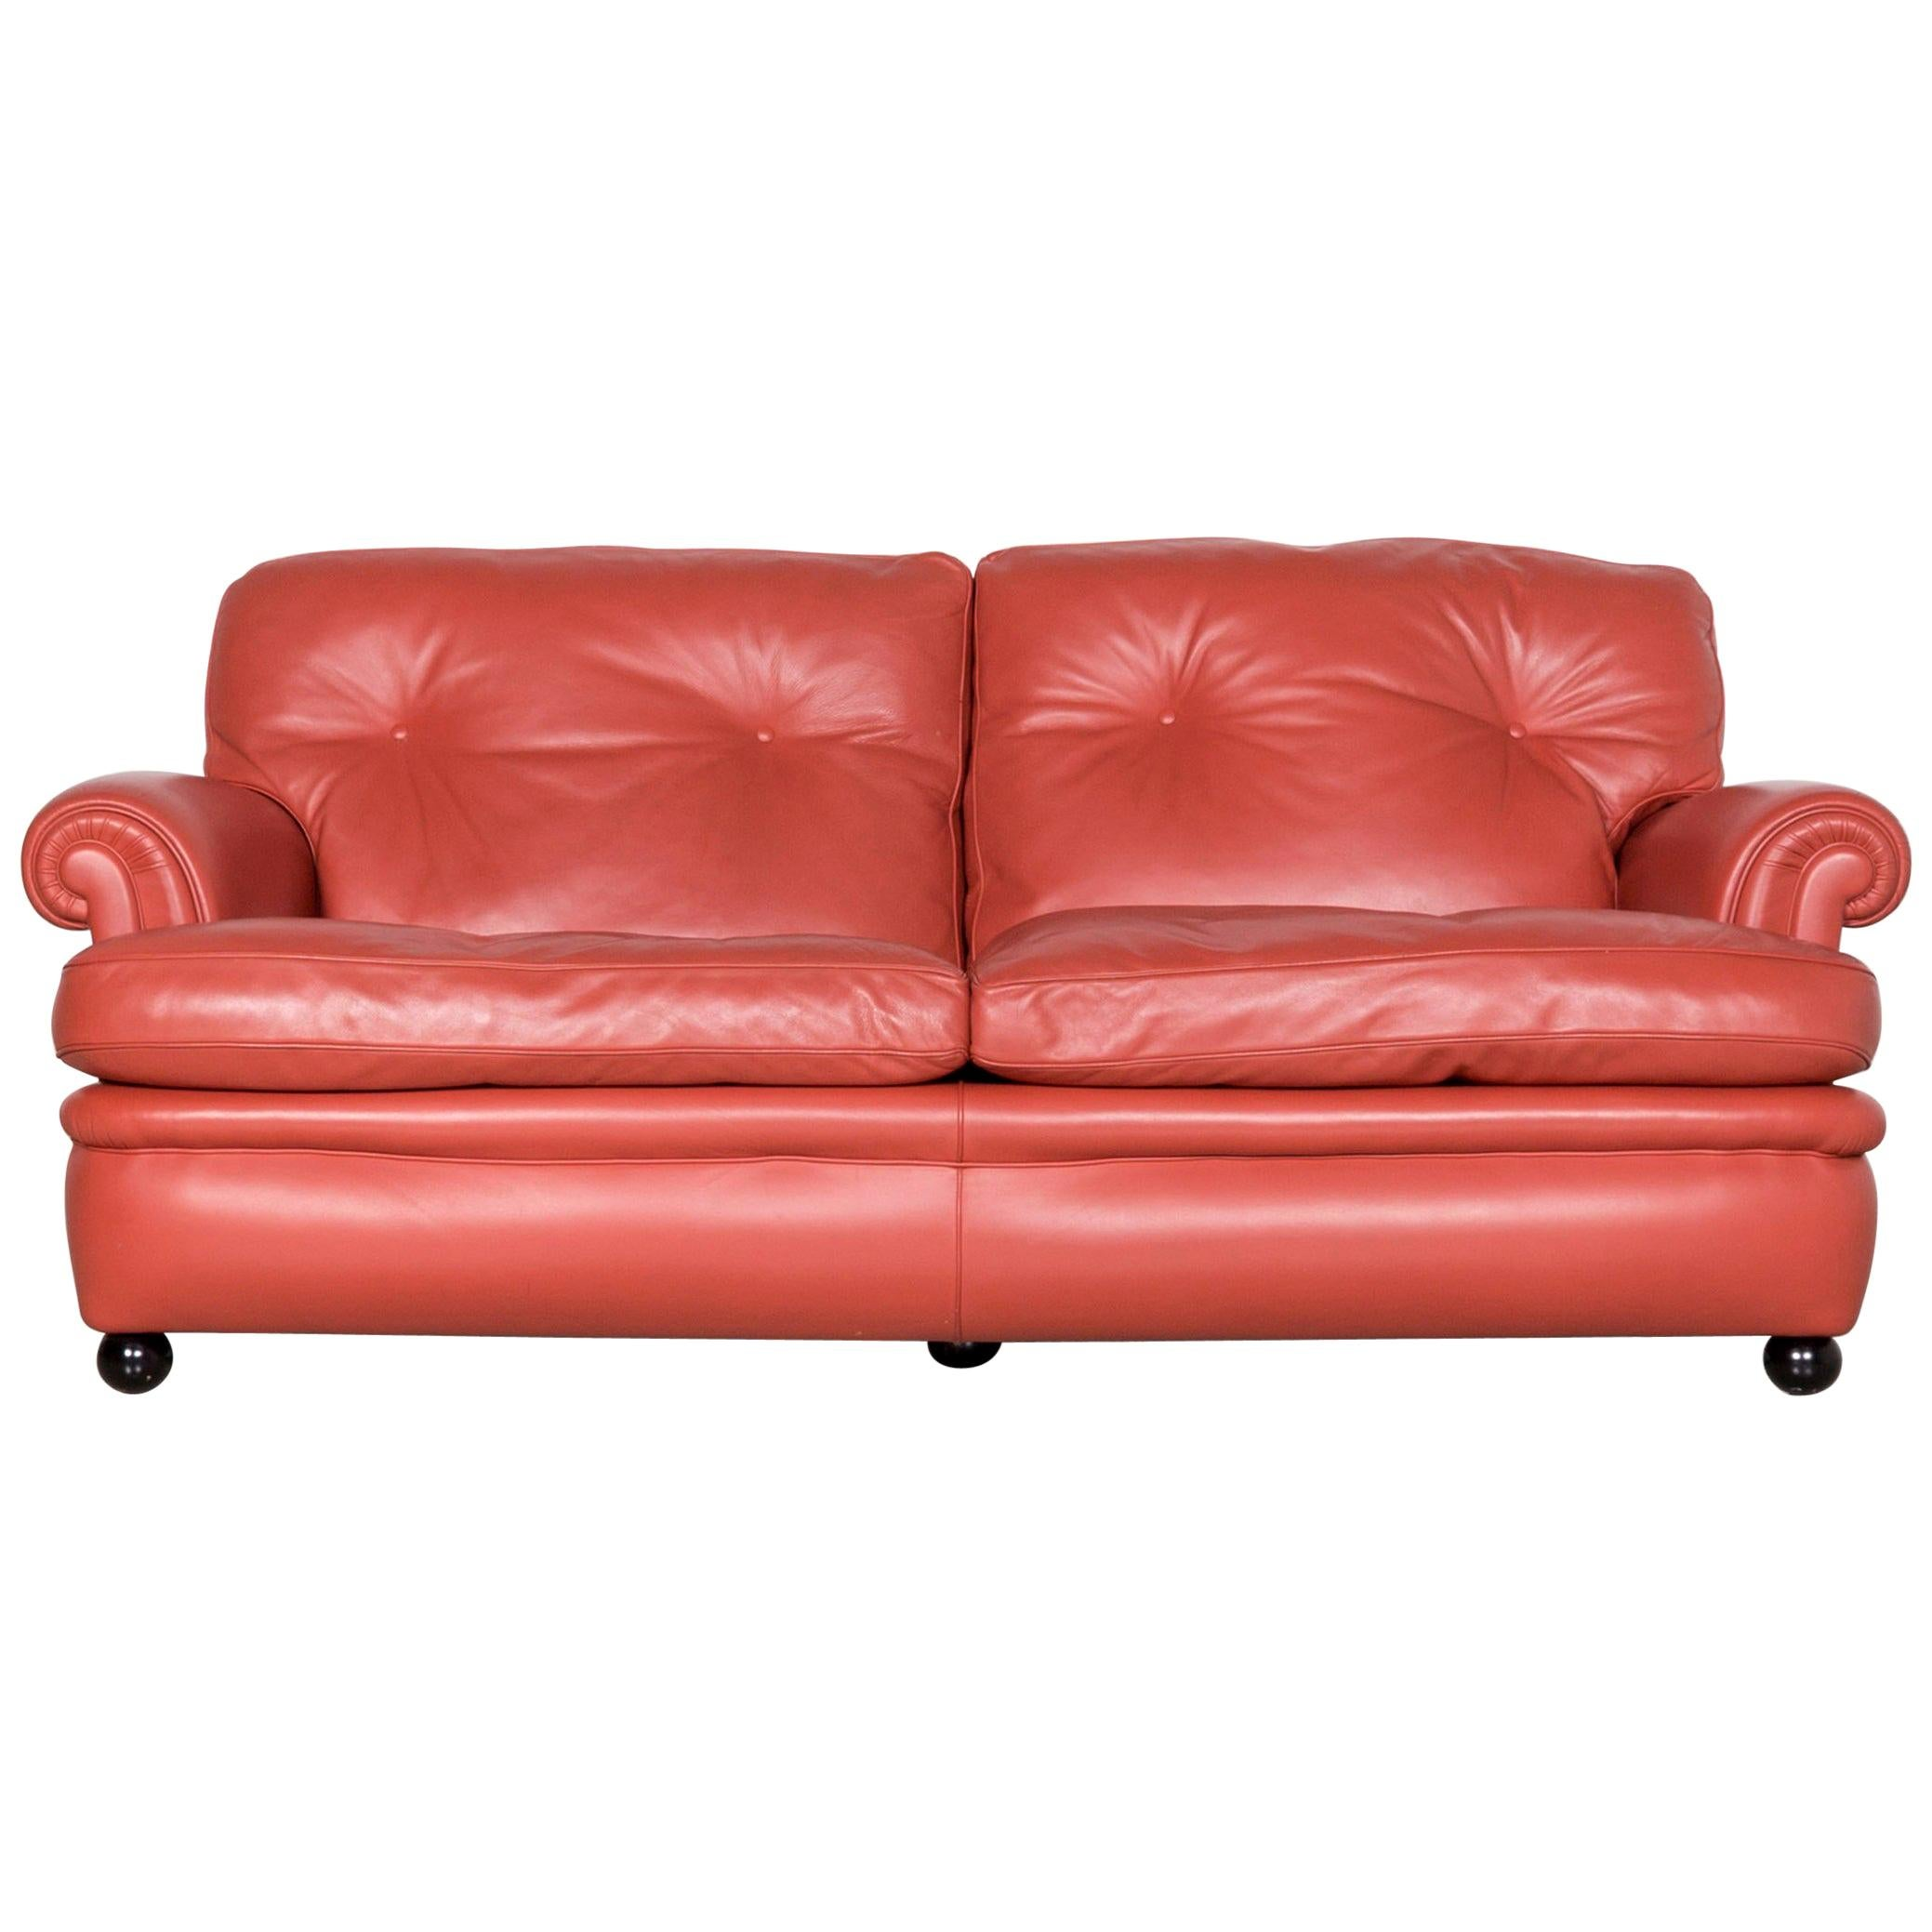 Poltrona Frau Dream on Designer Leather Two-Seat Couch Orange